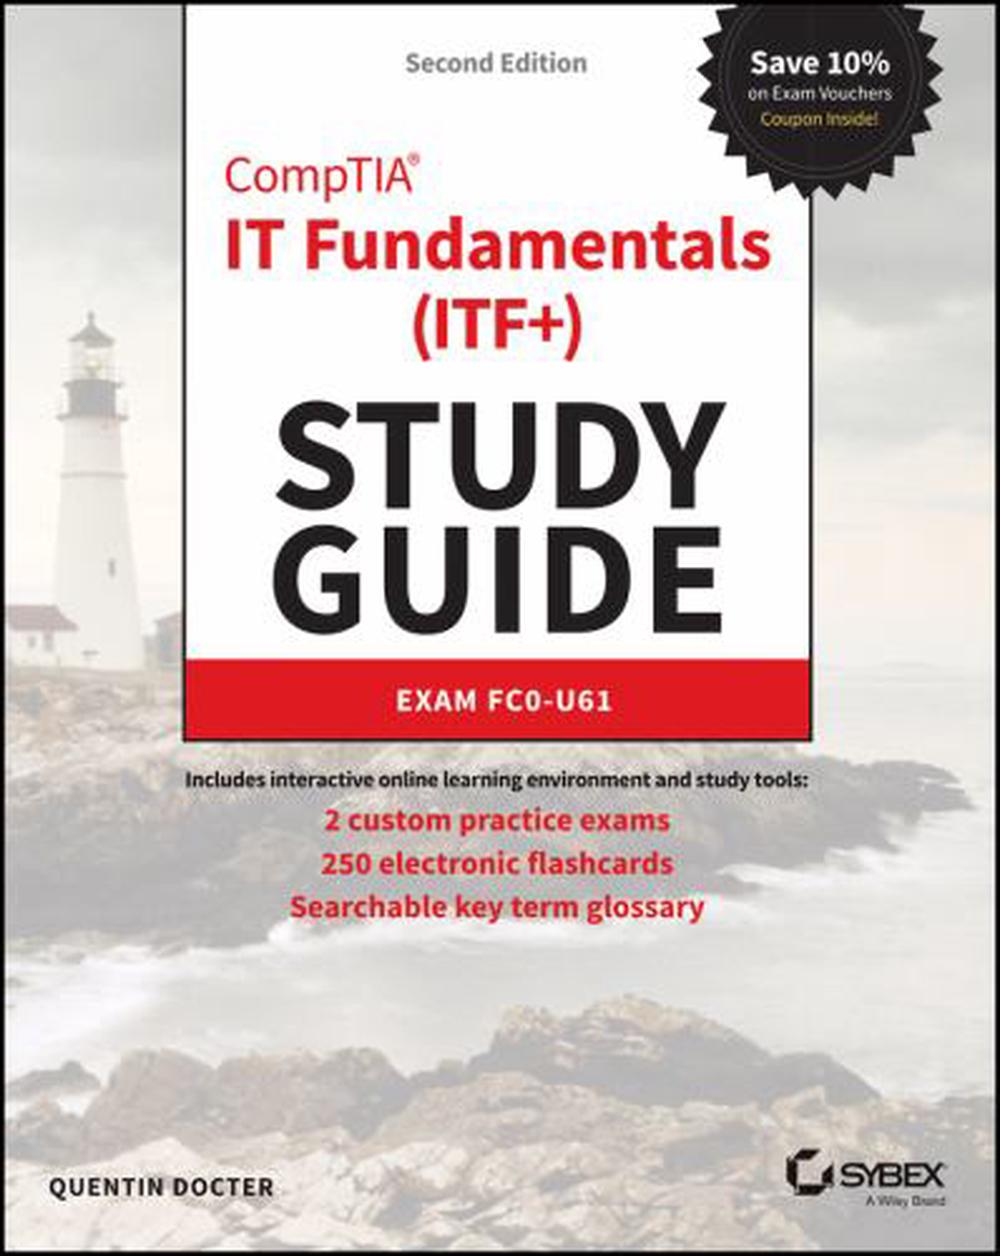 CompTIA IT Fundamentals Study Guide: Exam FC0-U61, 2e by Quentin Docter, ISBN: 9781119513124